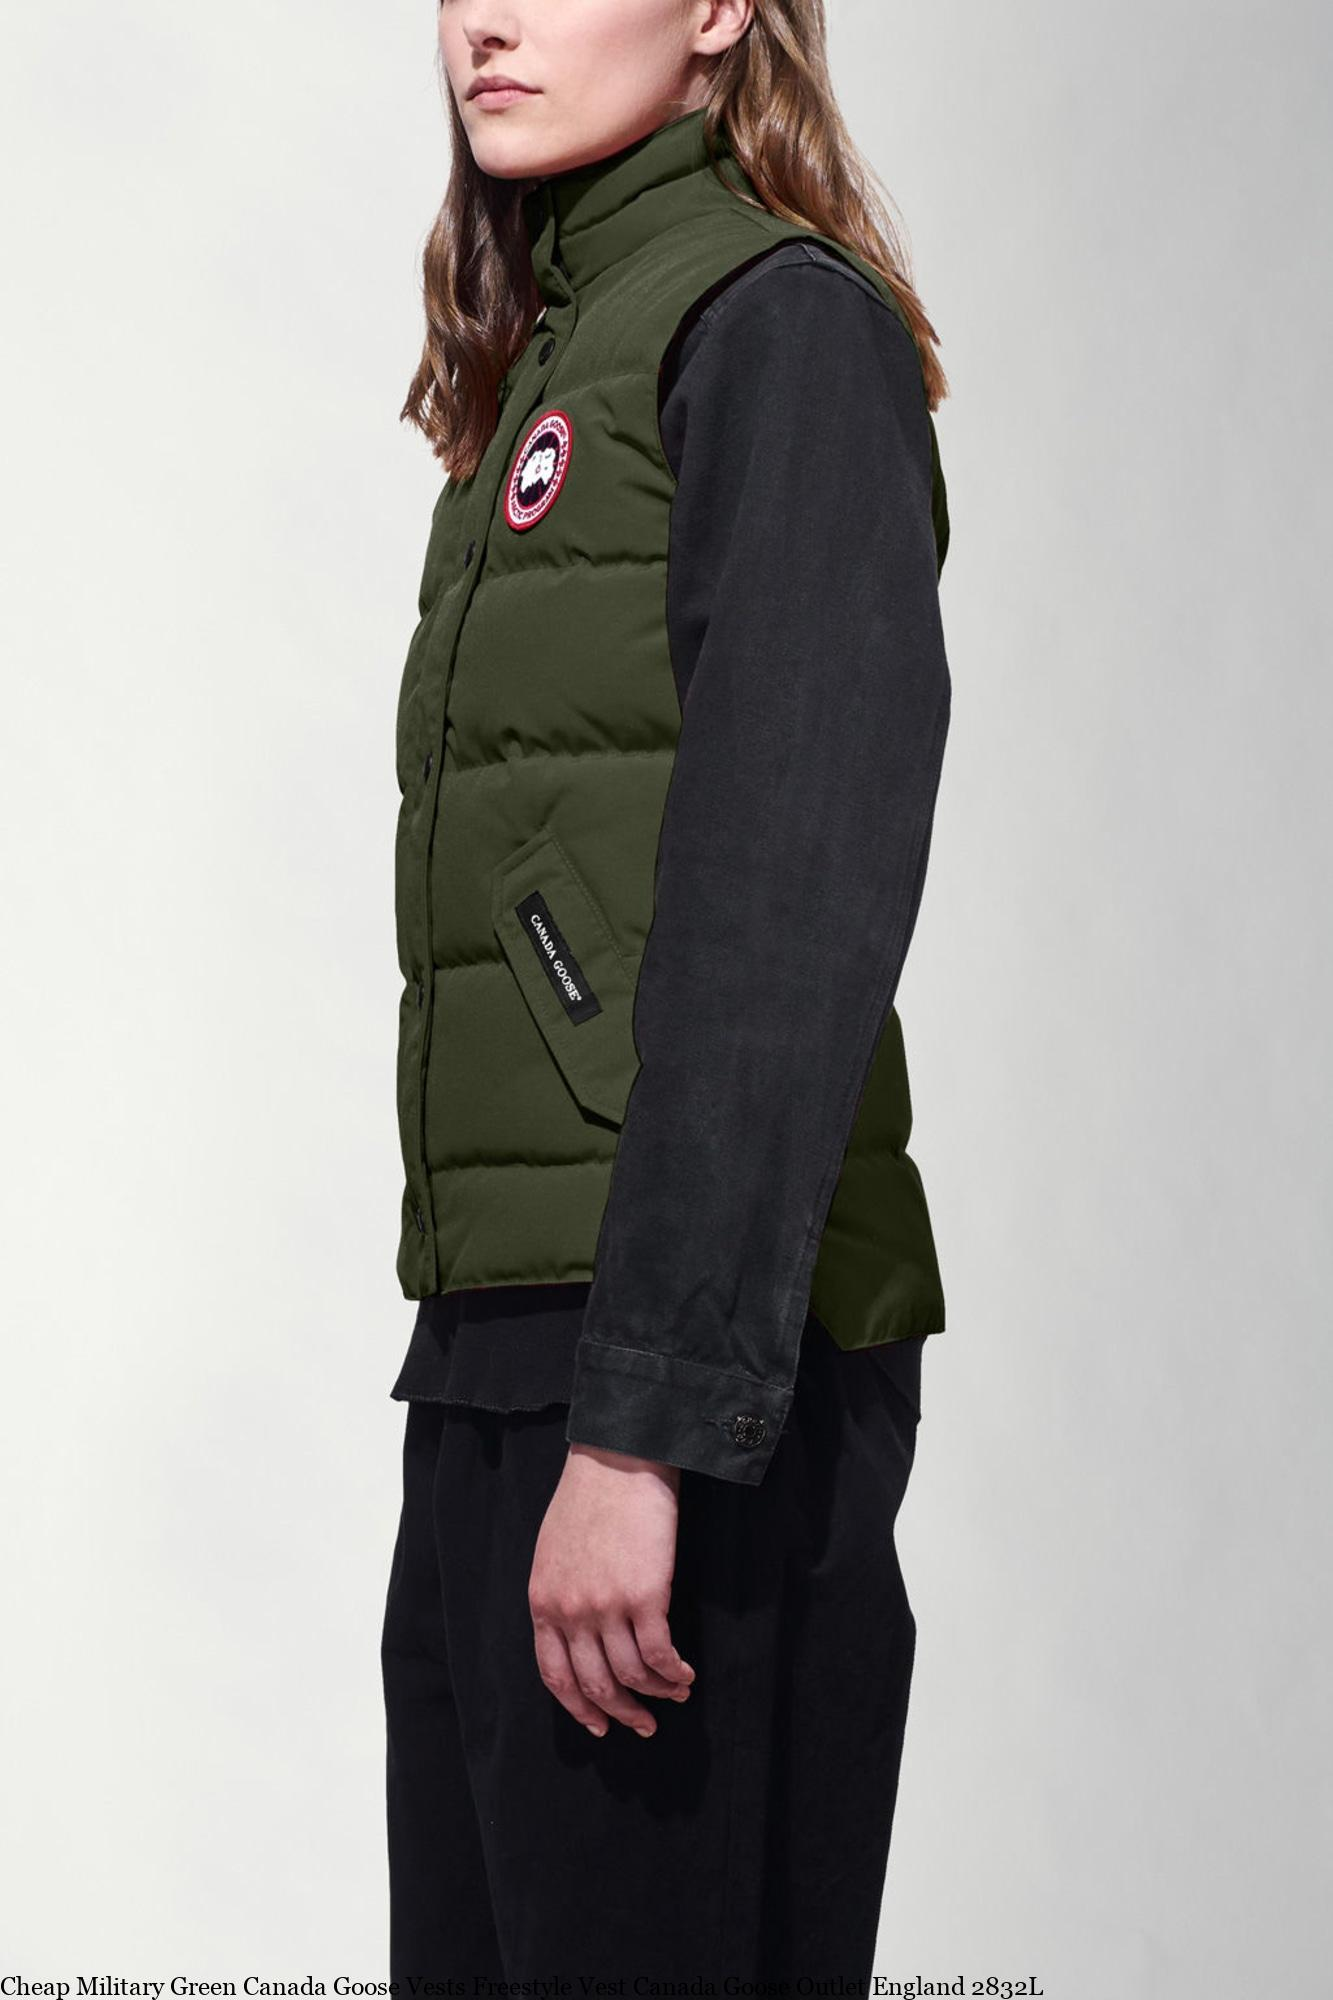 the latest 458e4 d4f53 Cheap Military Green Canada Goose Vests Freestyle Vest Canada Goose Outlet  England 2832L